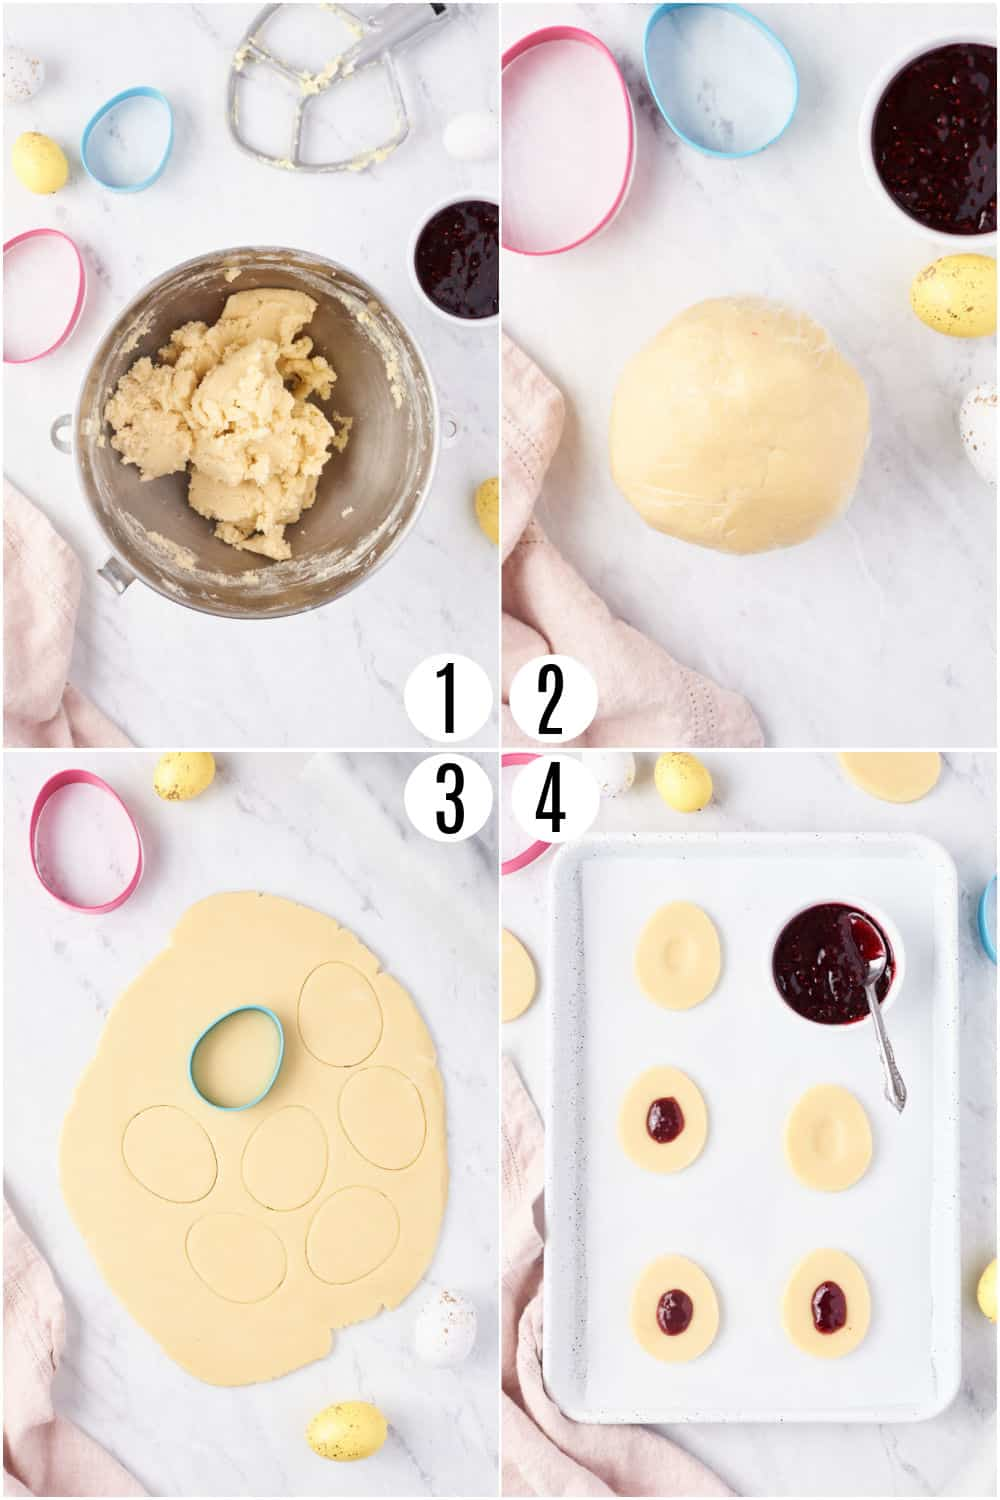 Step by step photos showing how to make Jam thumbprint cookies.